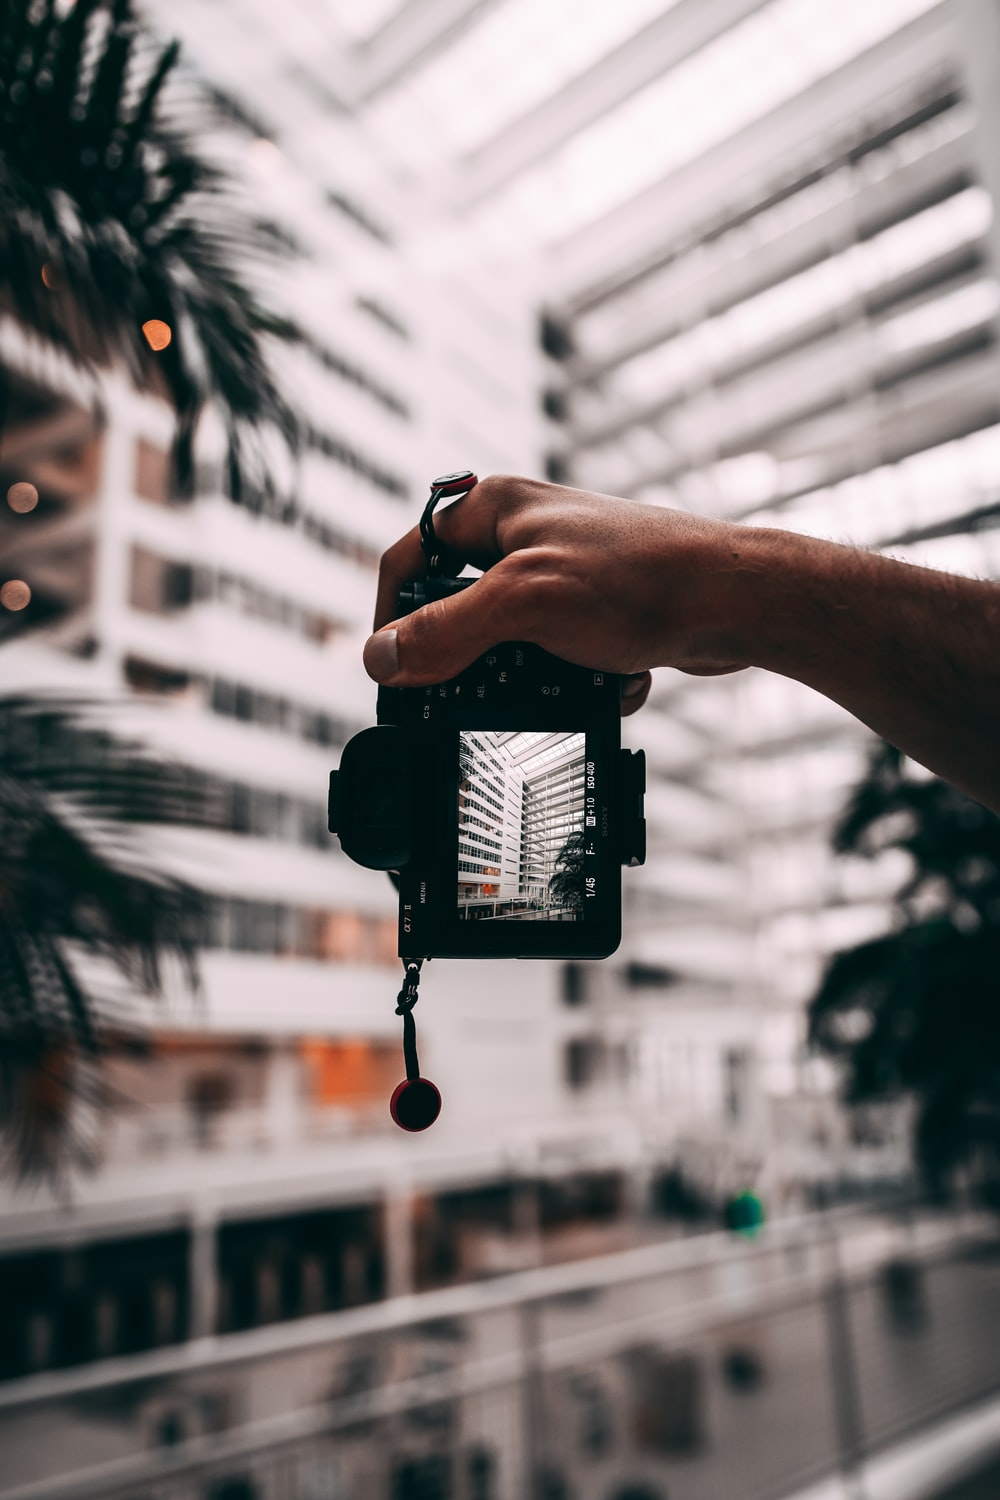 person holding black smartphone taking photo of building during daytime